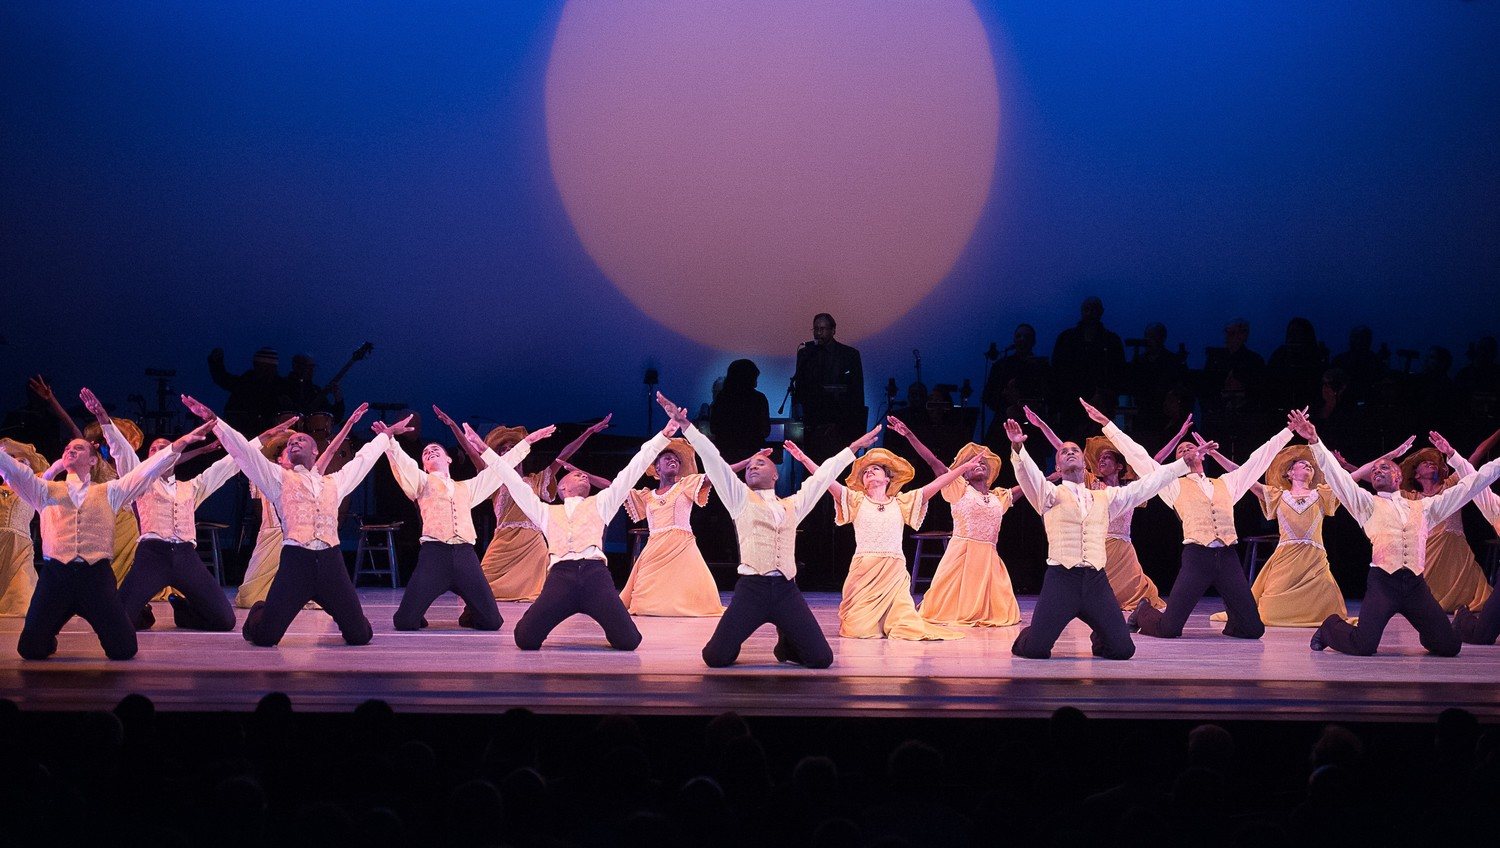 BWW Review: ALVIN AILEY AMERICAN DANCE THEATER 2017 Season at New York City Center